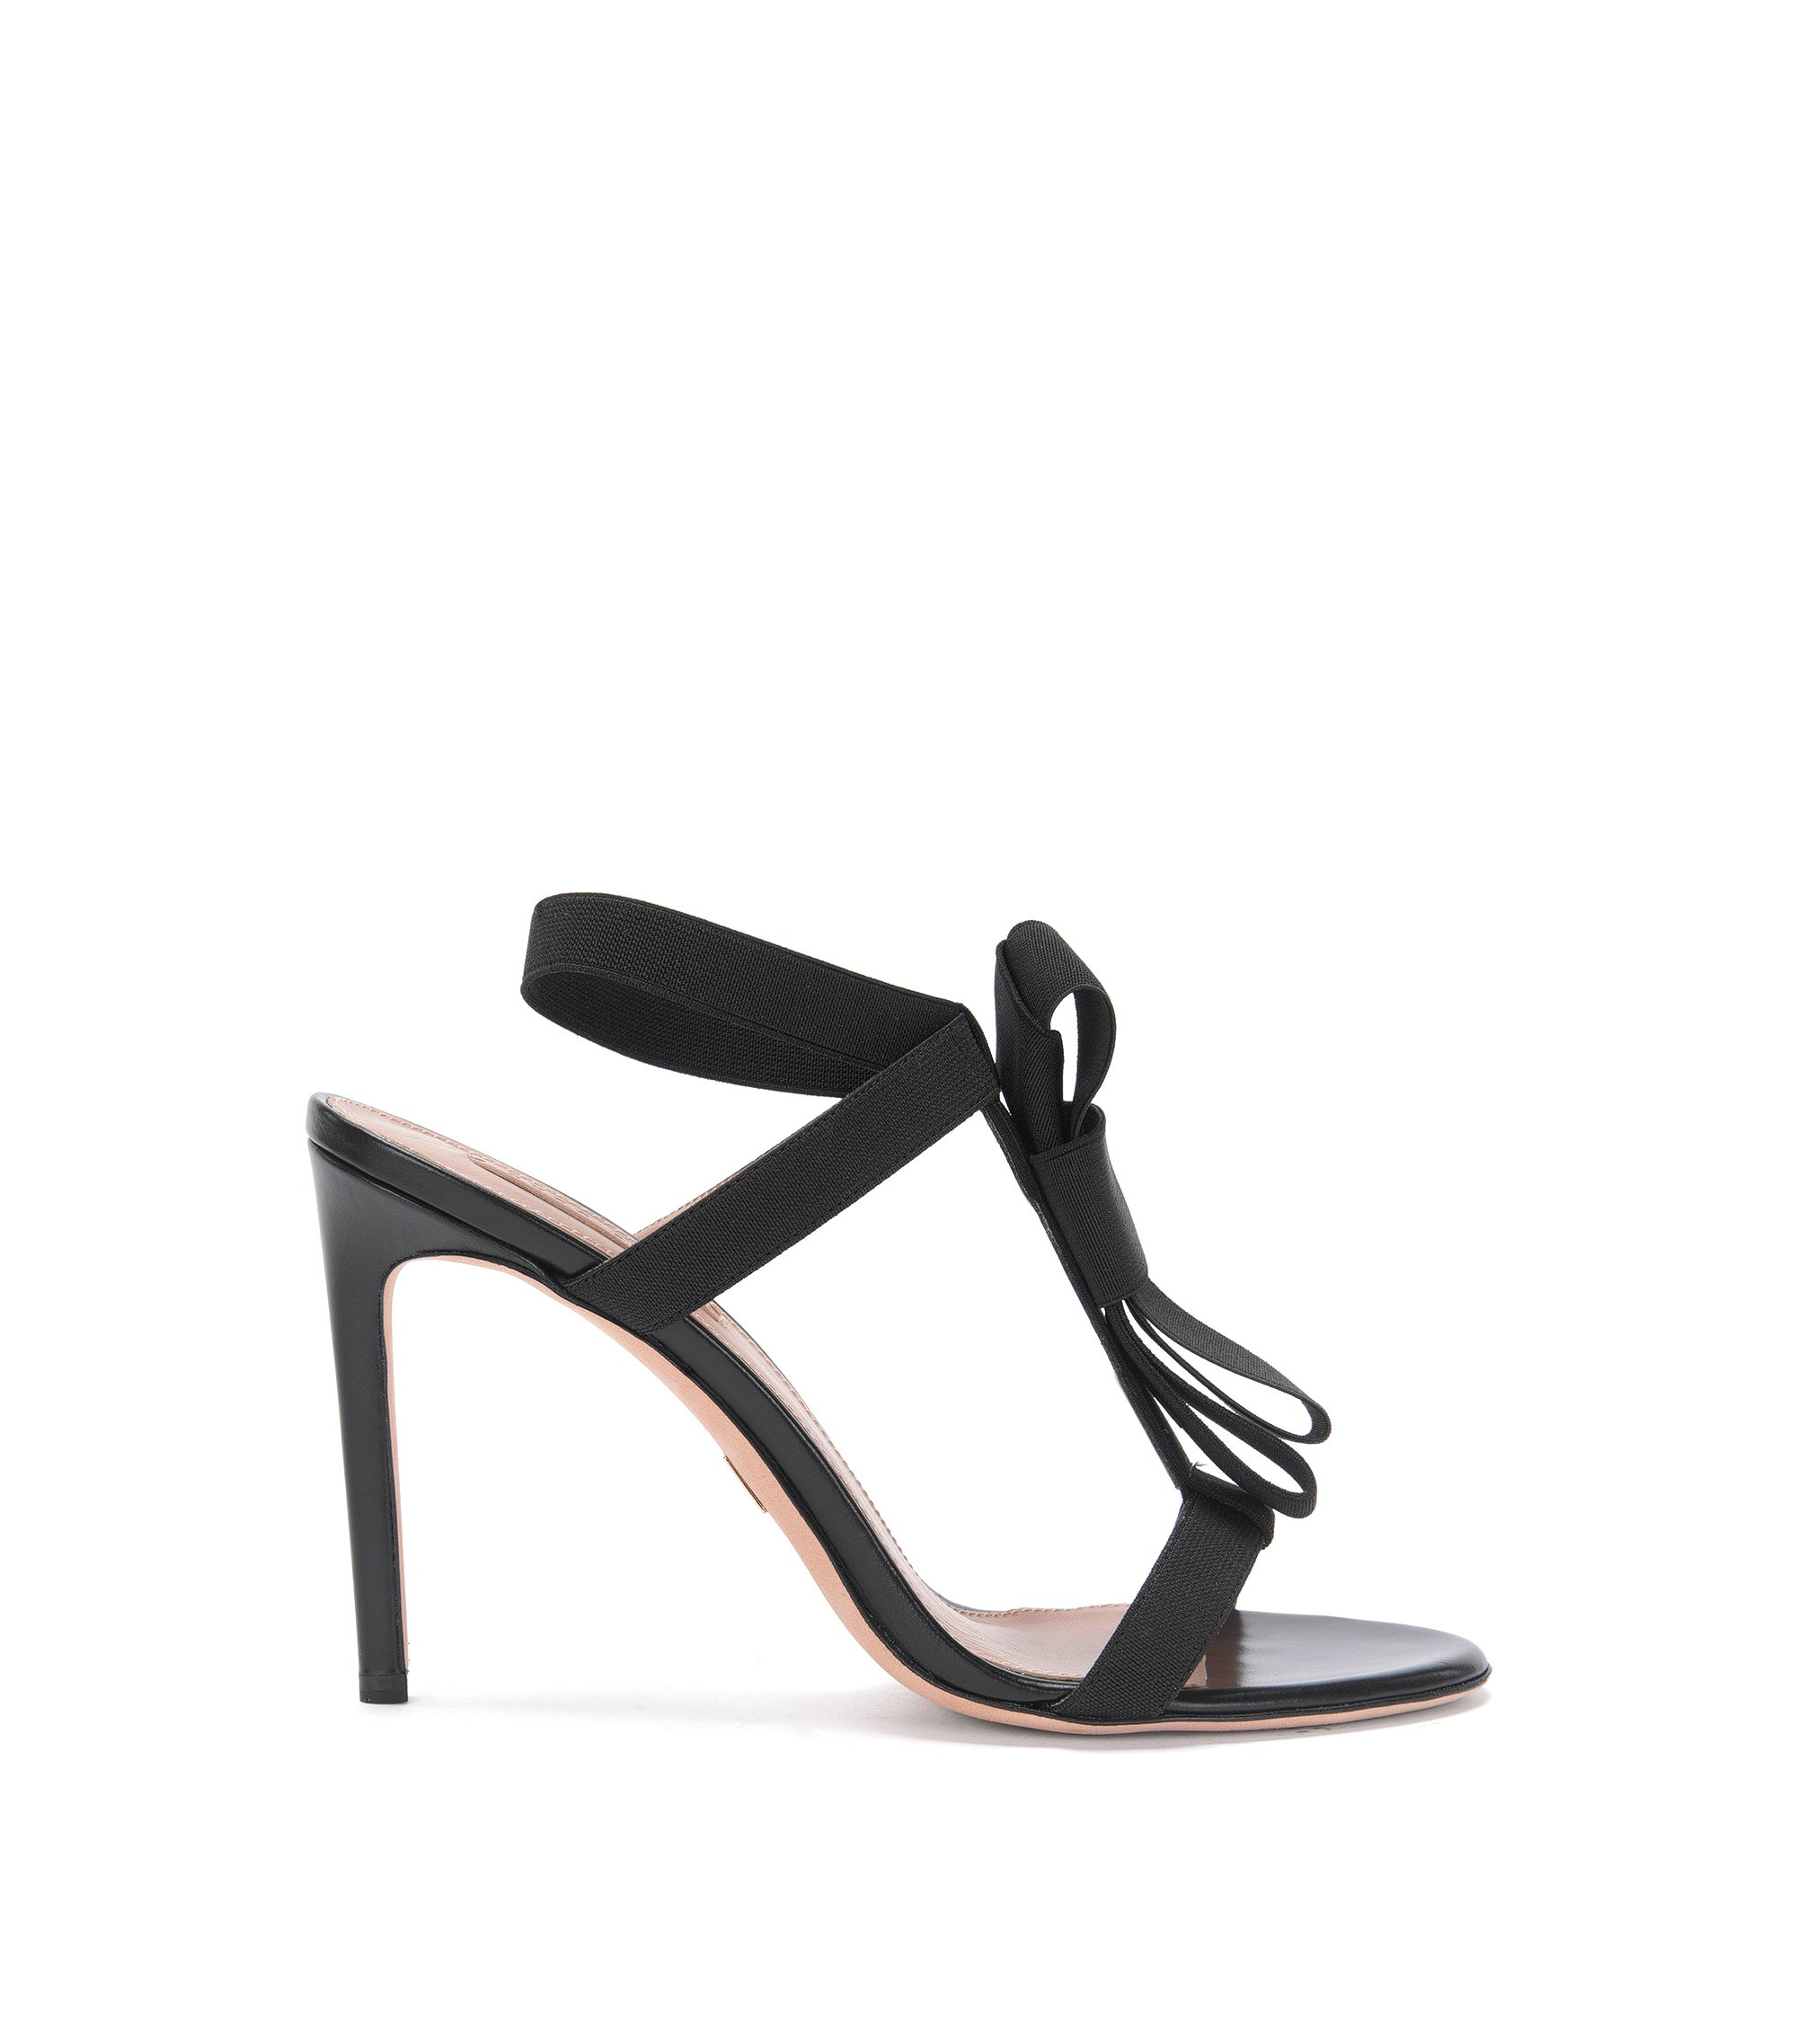 'Bow Tie Sandal' | Stretch Bow Tie Leather Sandal, Black